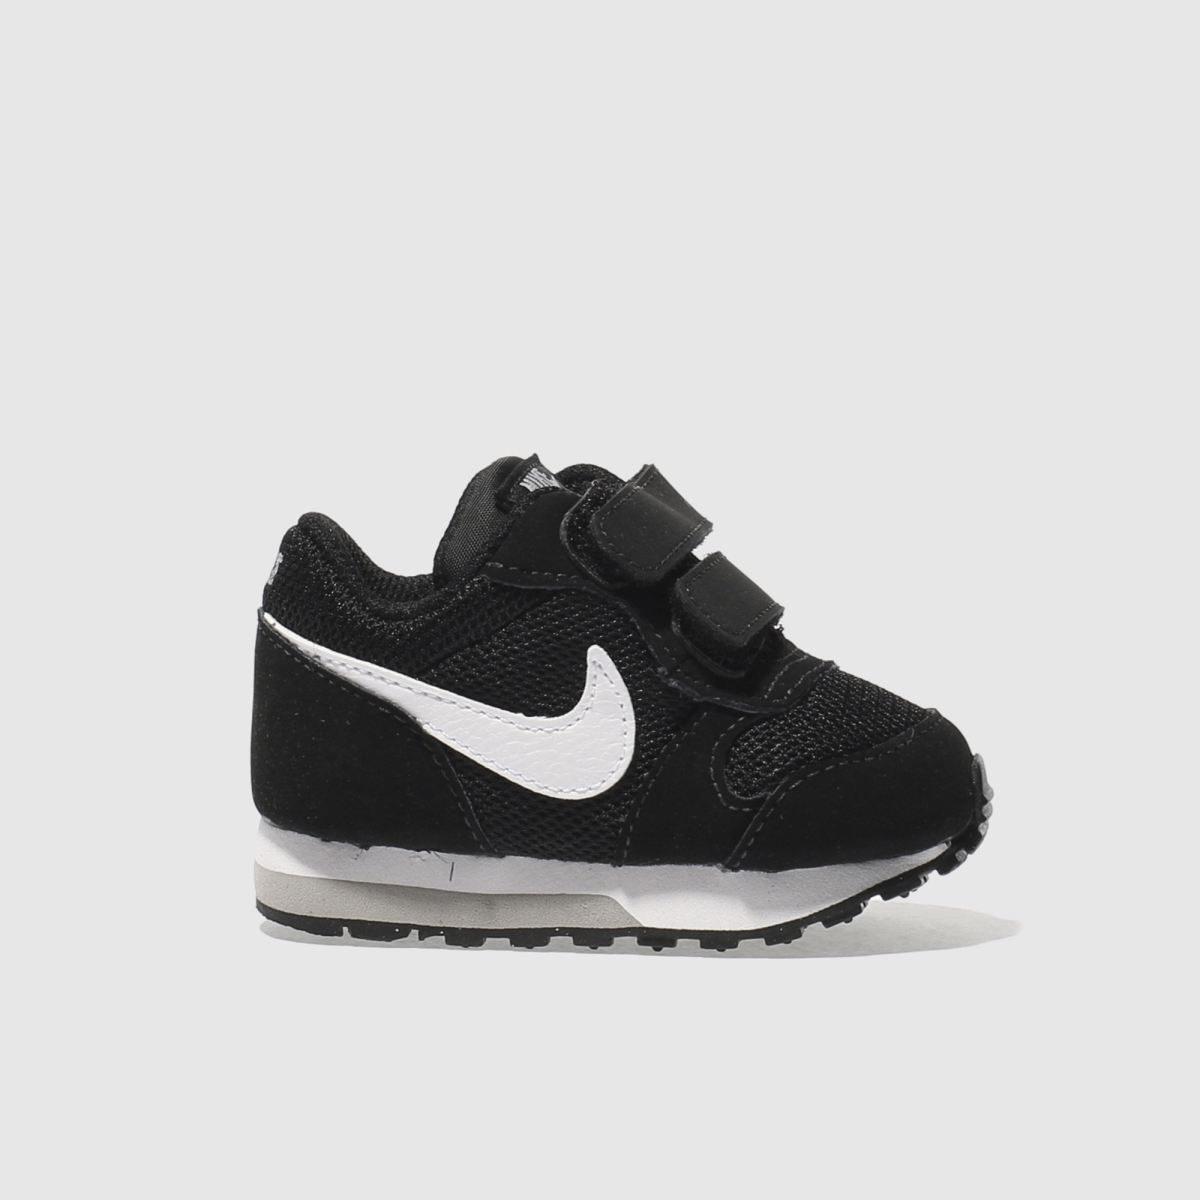 nike black & white md runner 2 Boys Toddler Trainers